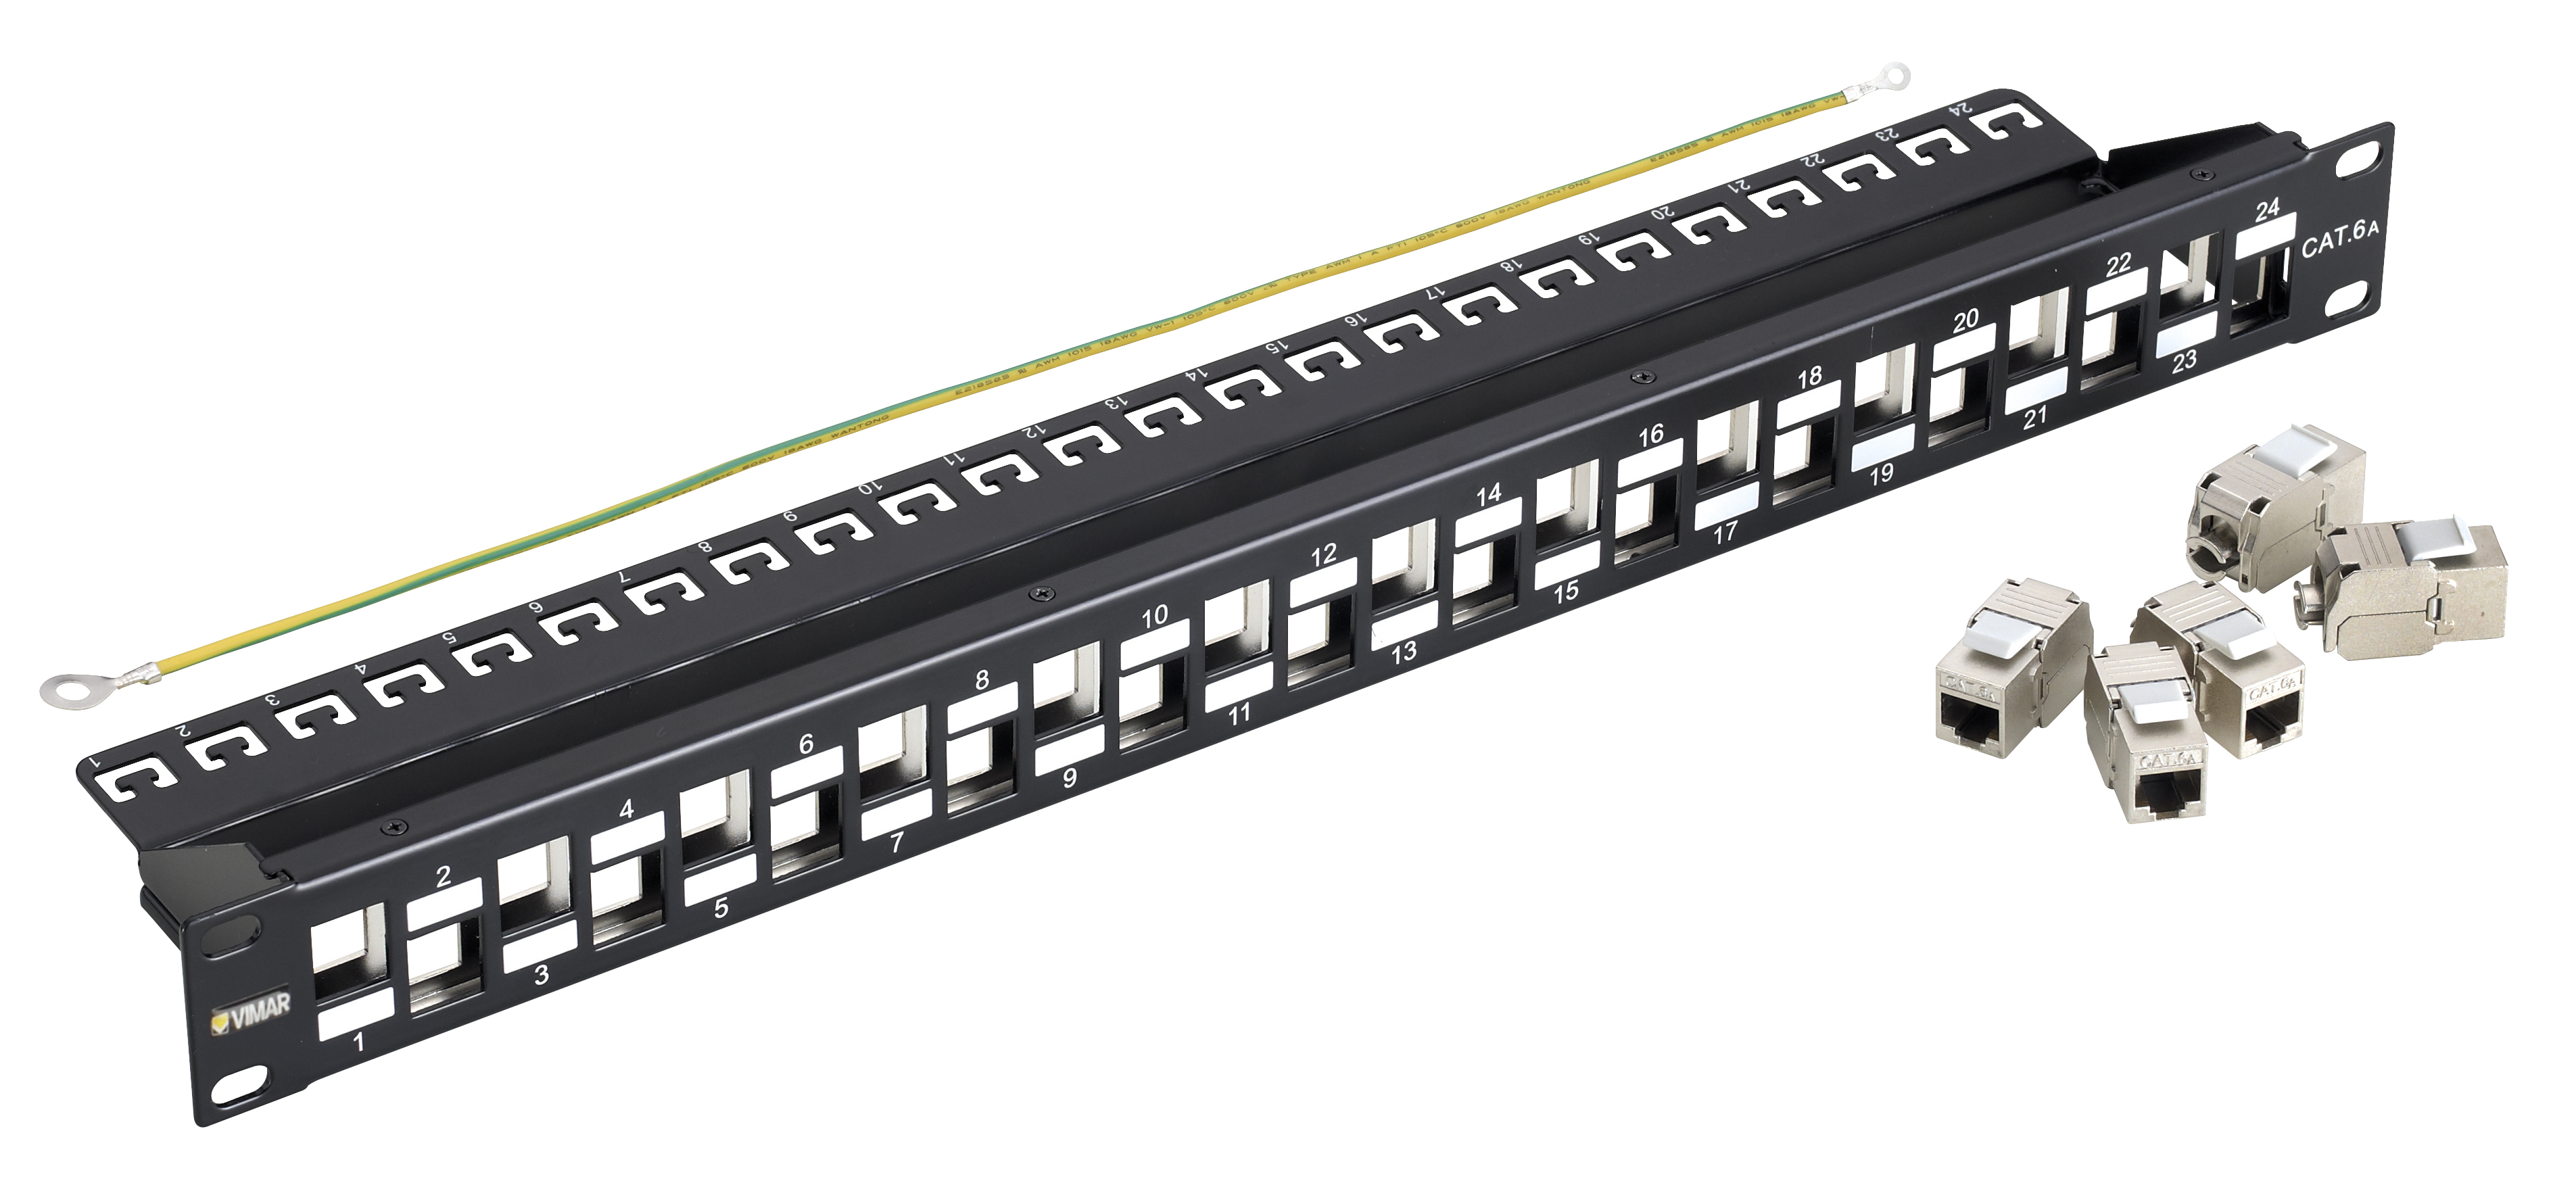 cat6 patch panel wiring diagram drum switch single phase motor panels 24 rj45 cat6a ftp conn 1u